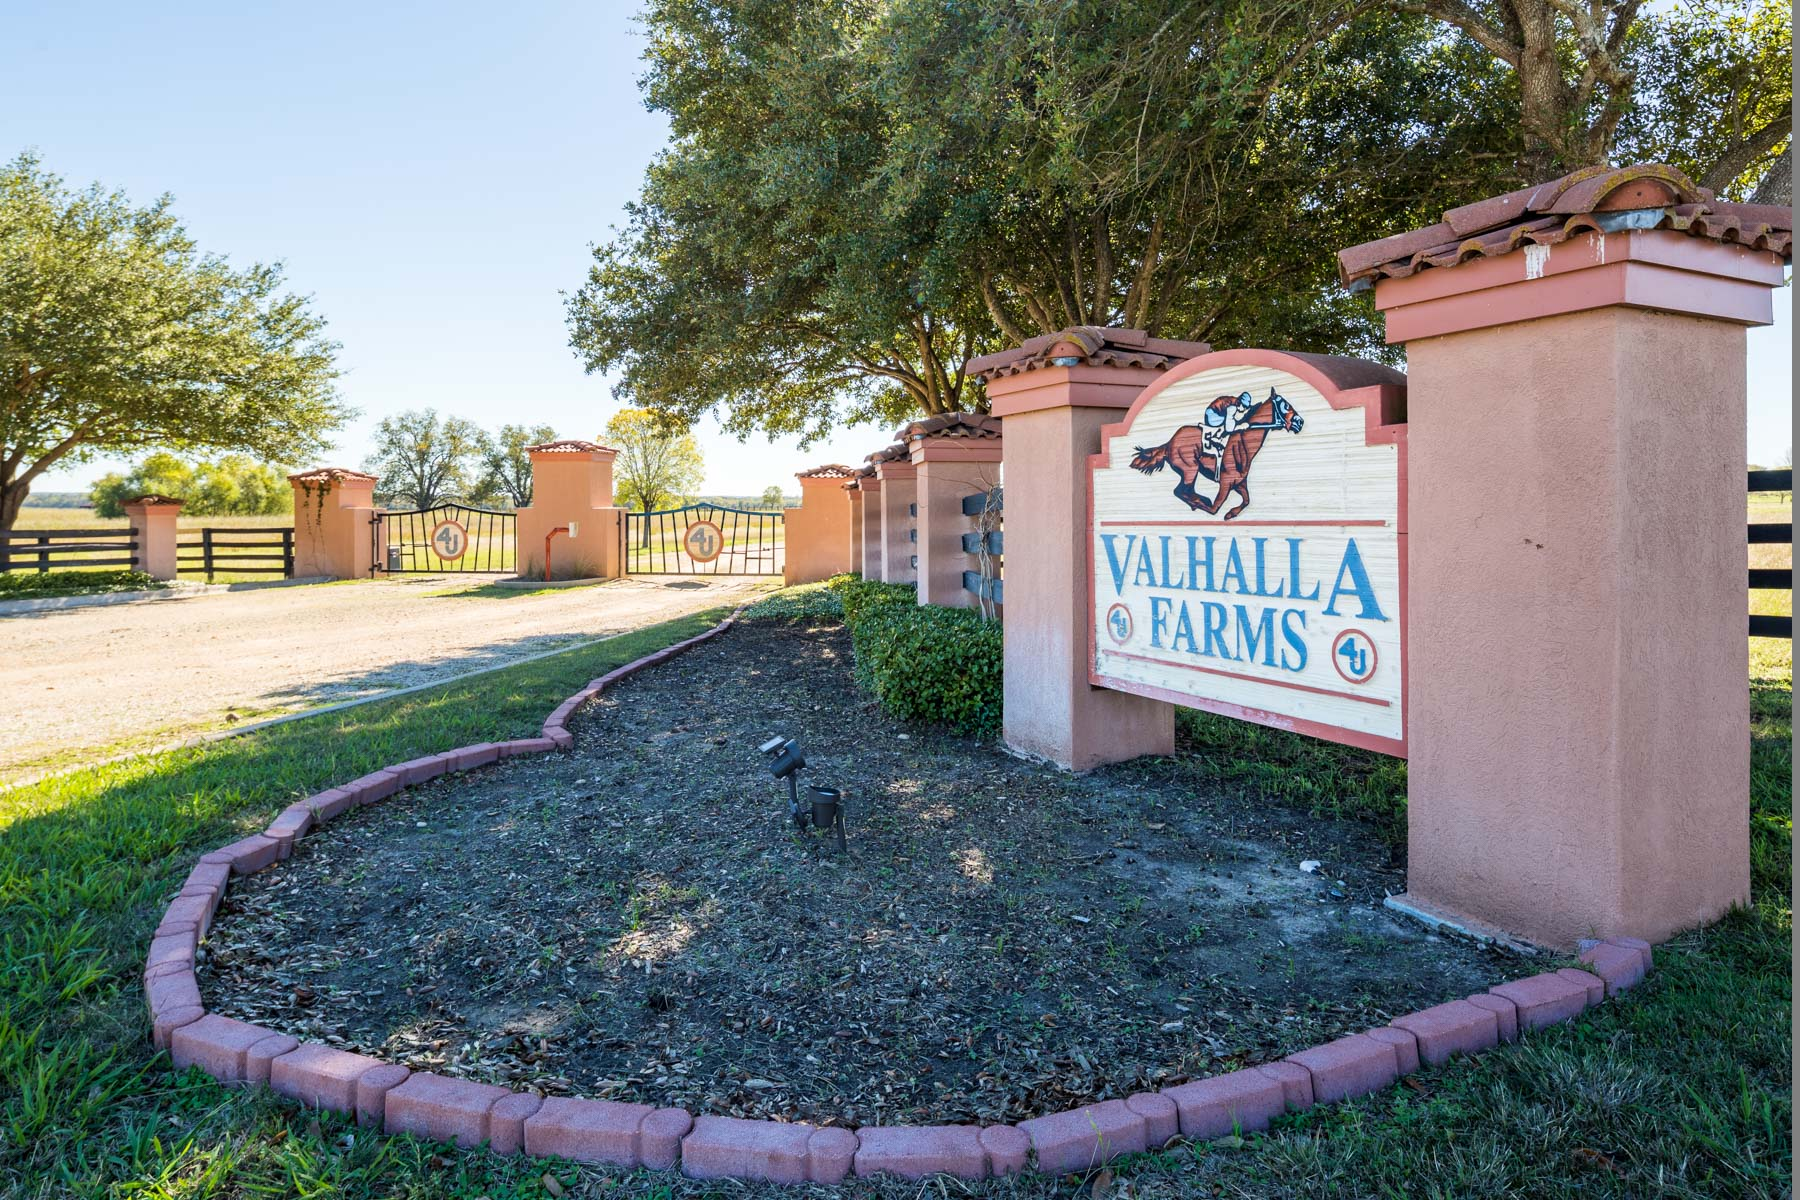 Additional photo for property listing at Valhalla Farm 7099 FM 487 Rockdale, Texas 76567 United States